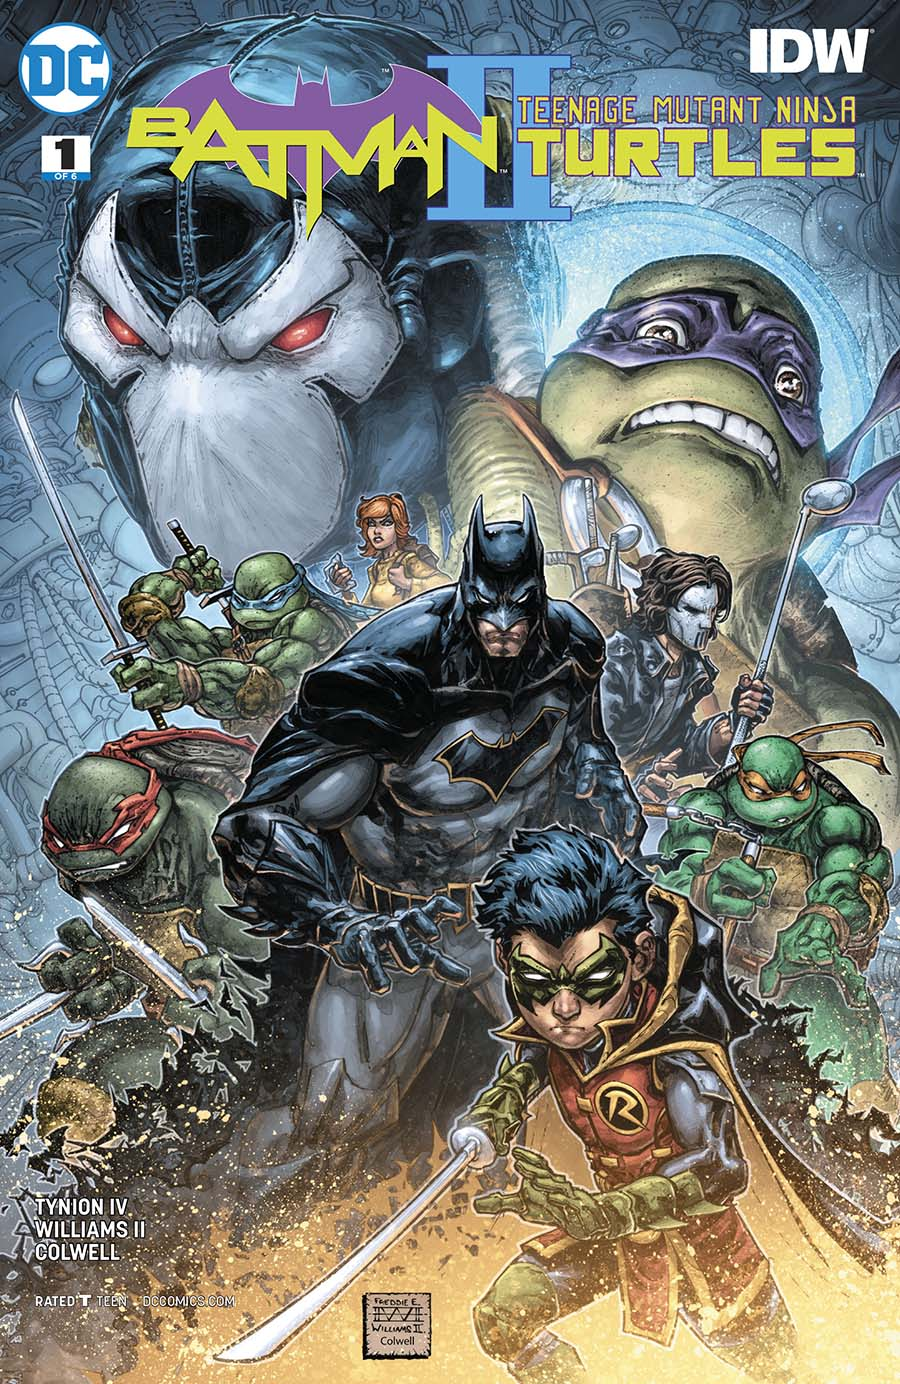 Batman Teenage Mutant Ninja Turtles II #1 Cover A Regular Freddie E Williams II Cover